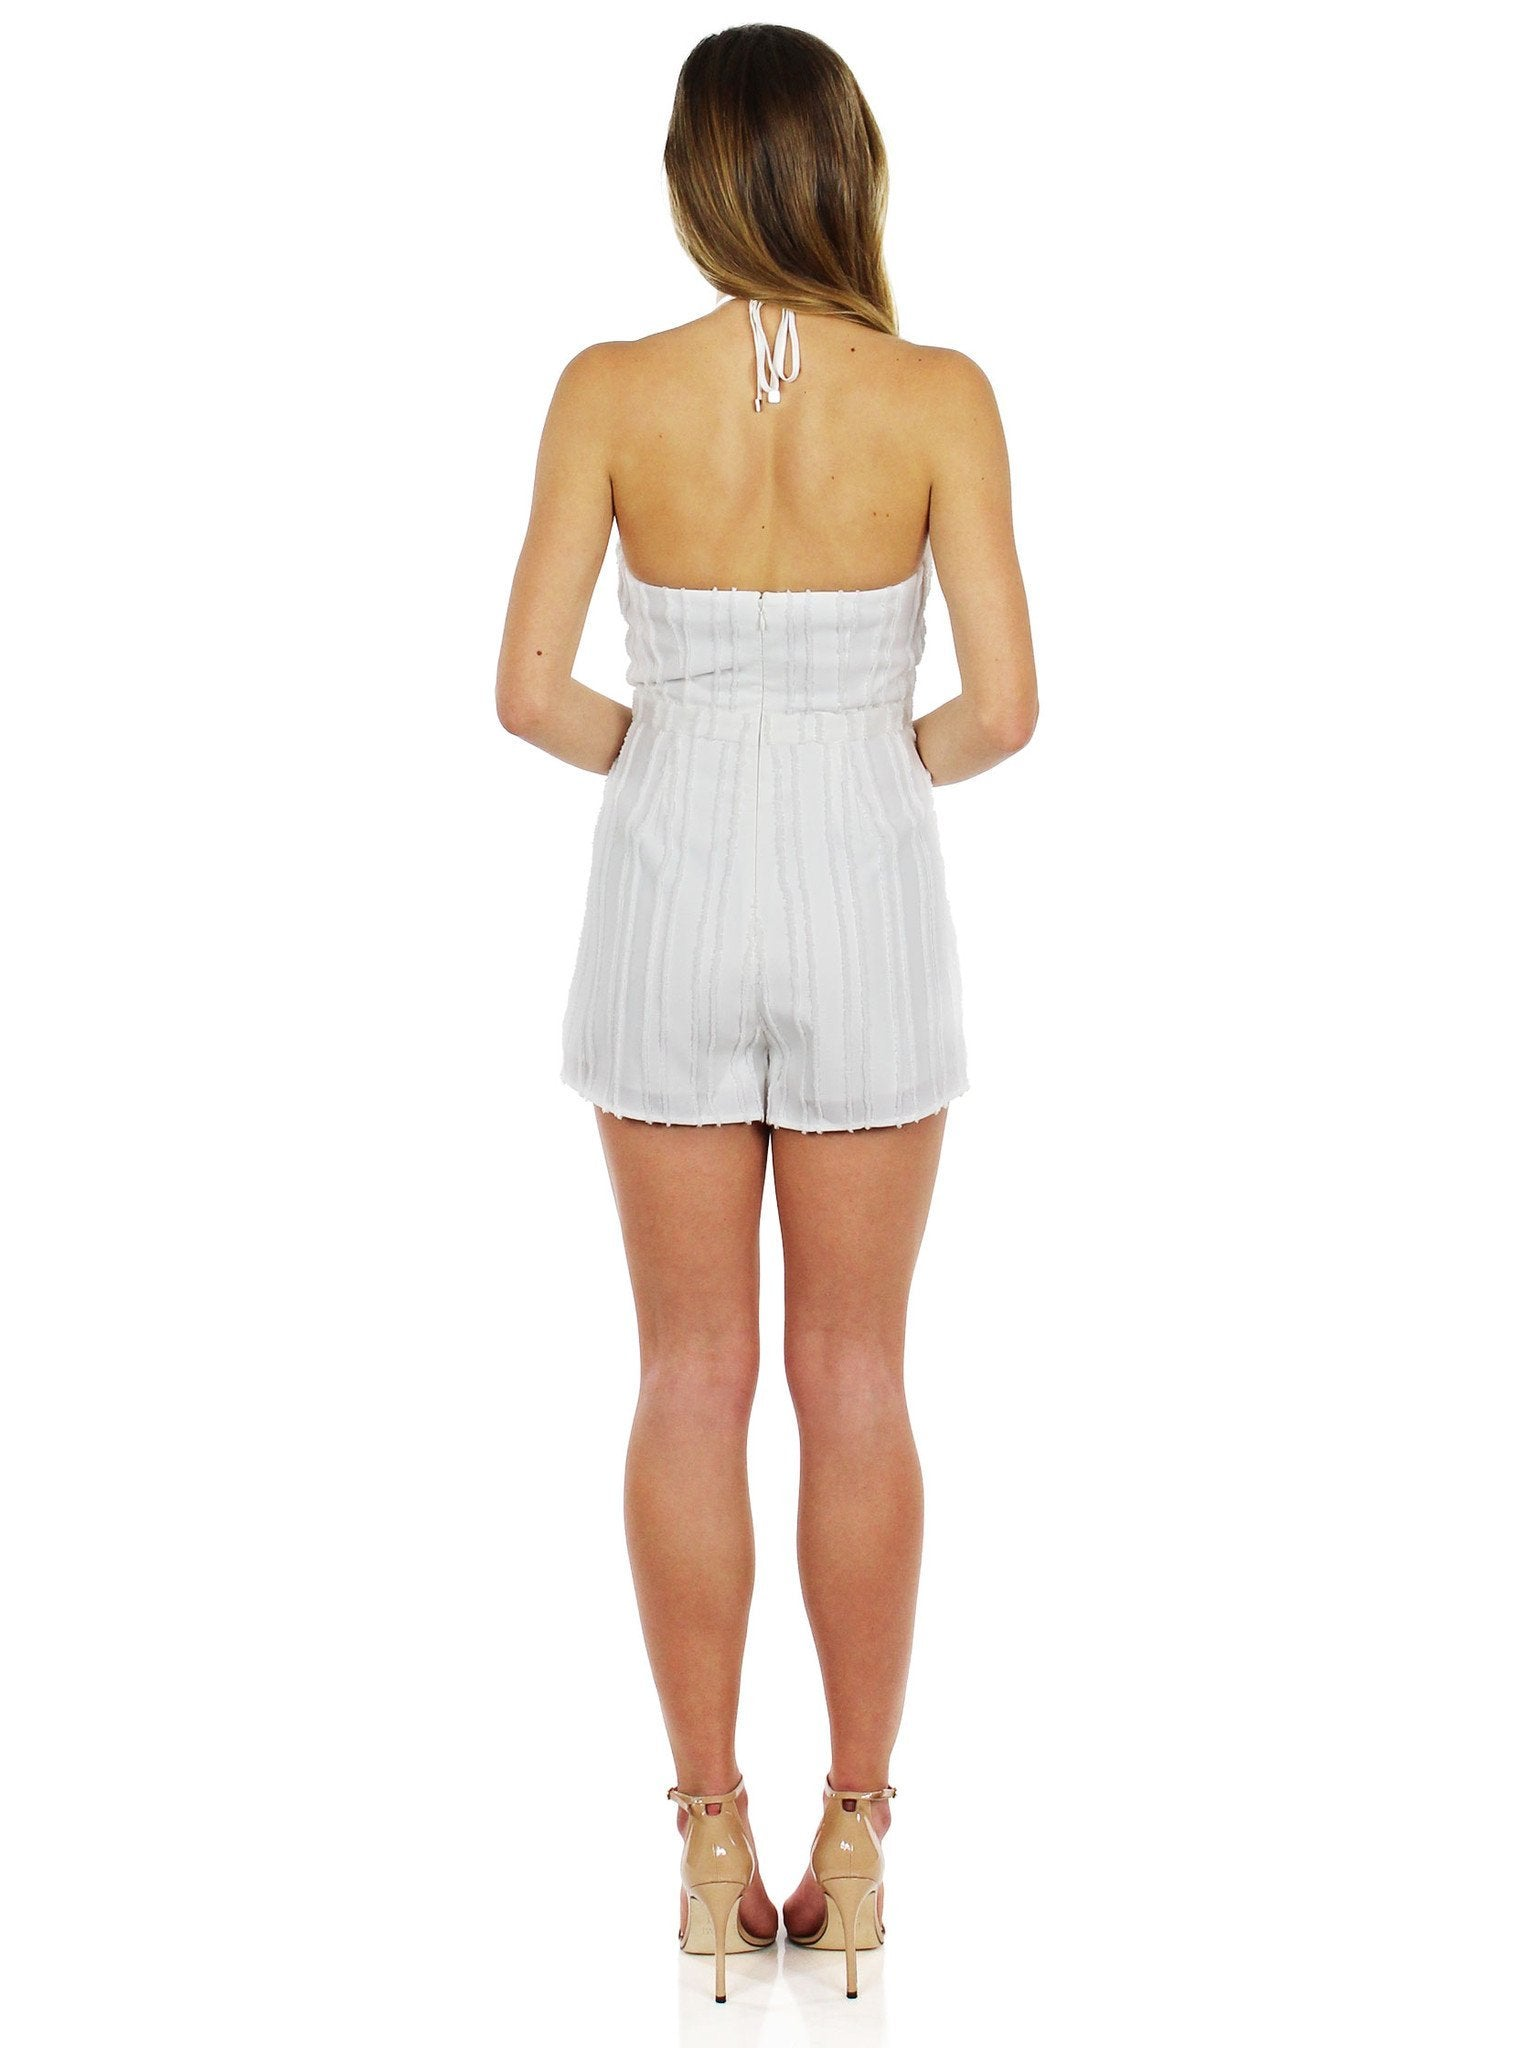 Women wearing a romper rental from STYLESTALKER called Prague Romper